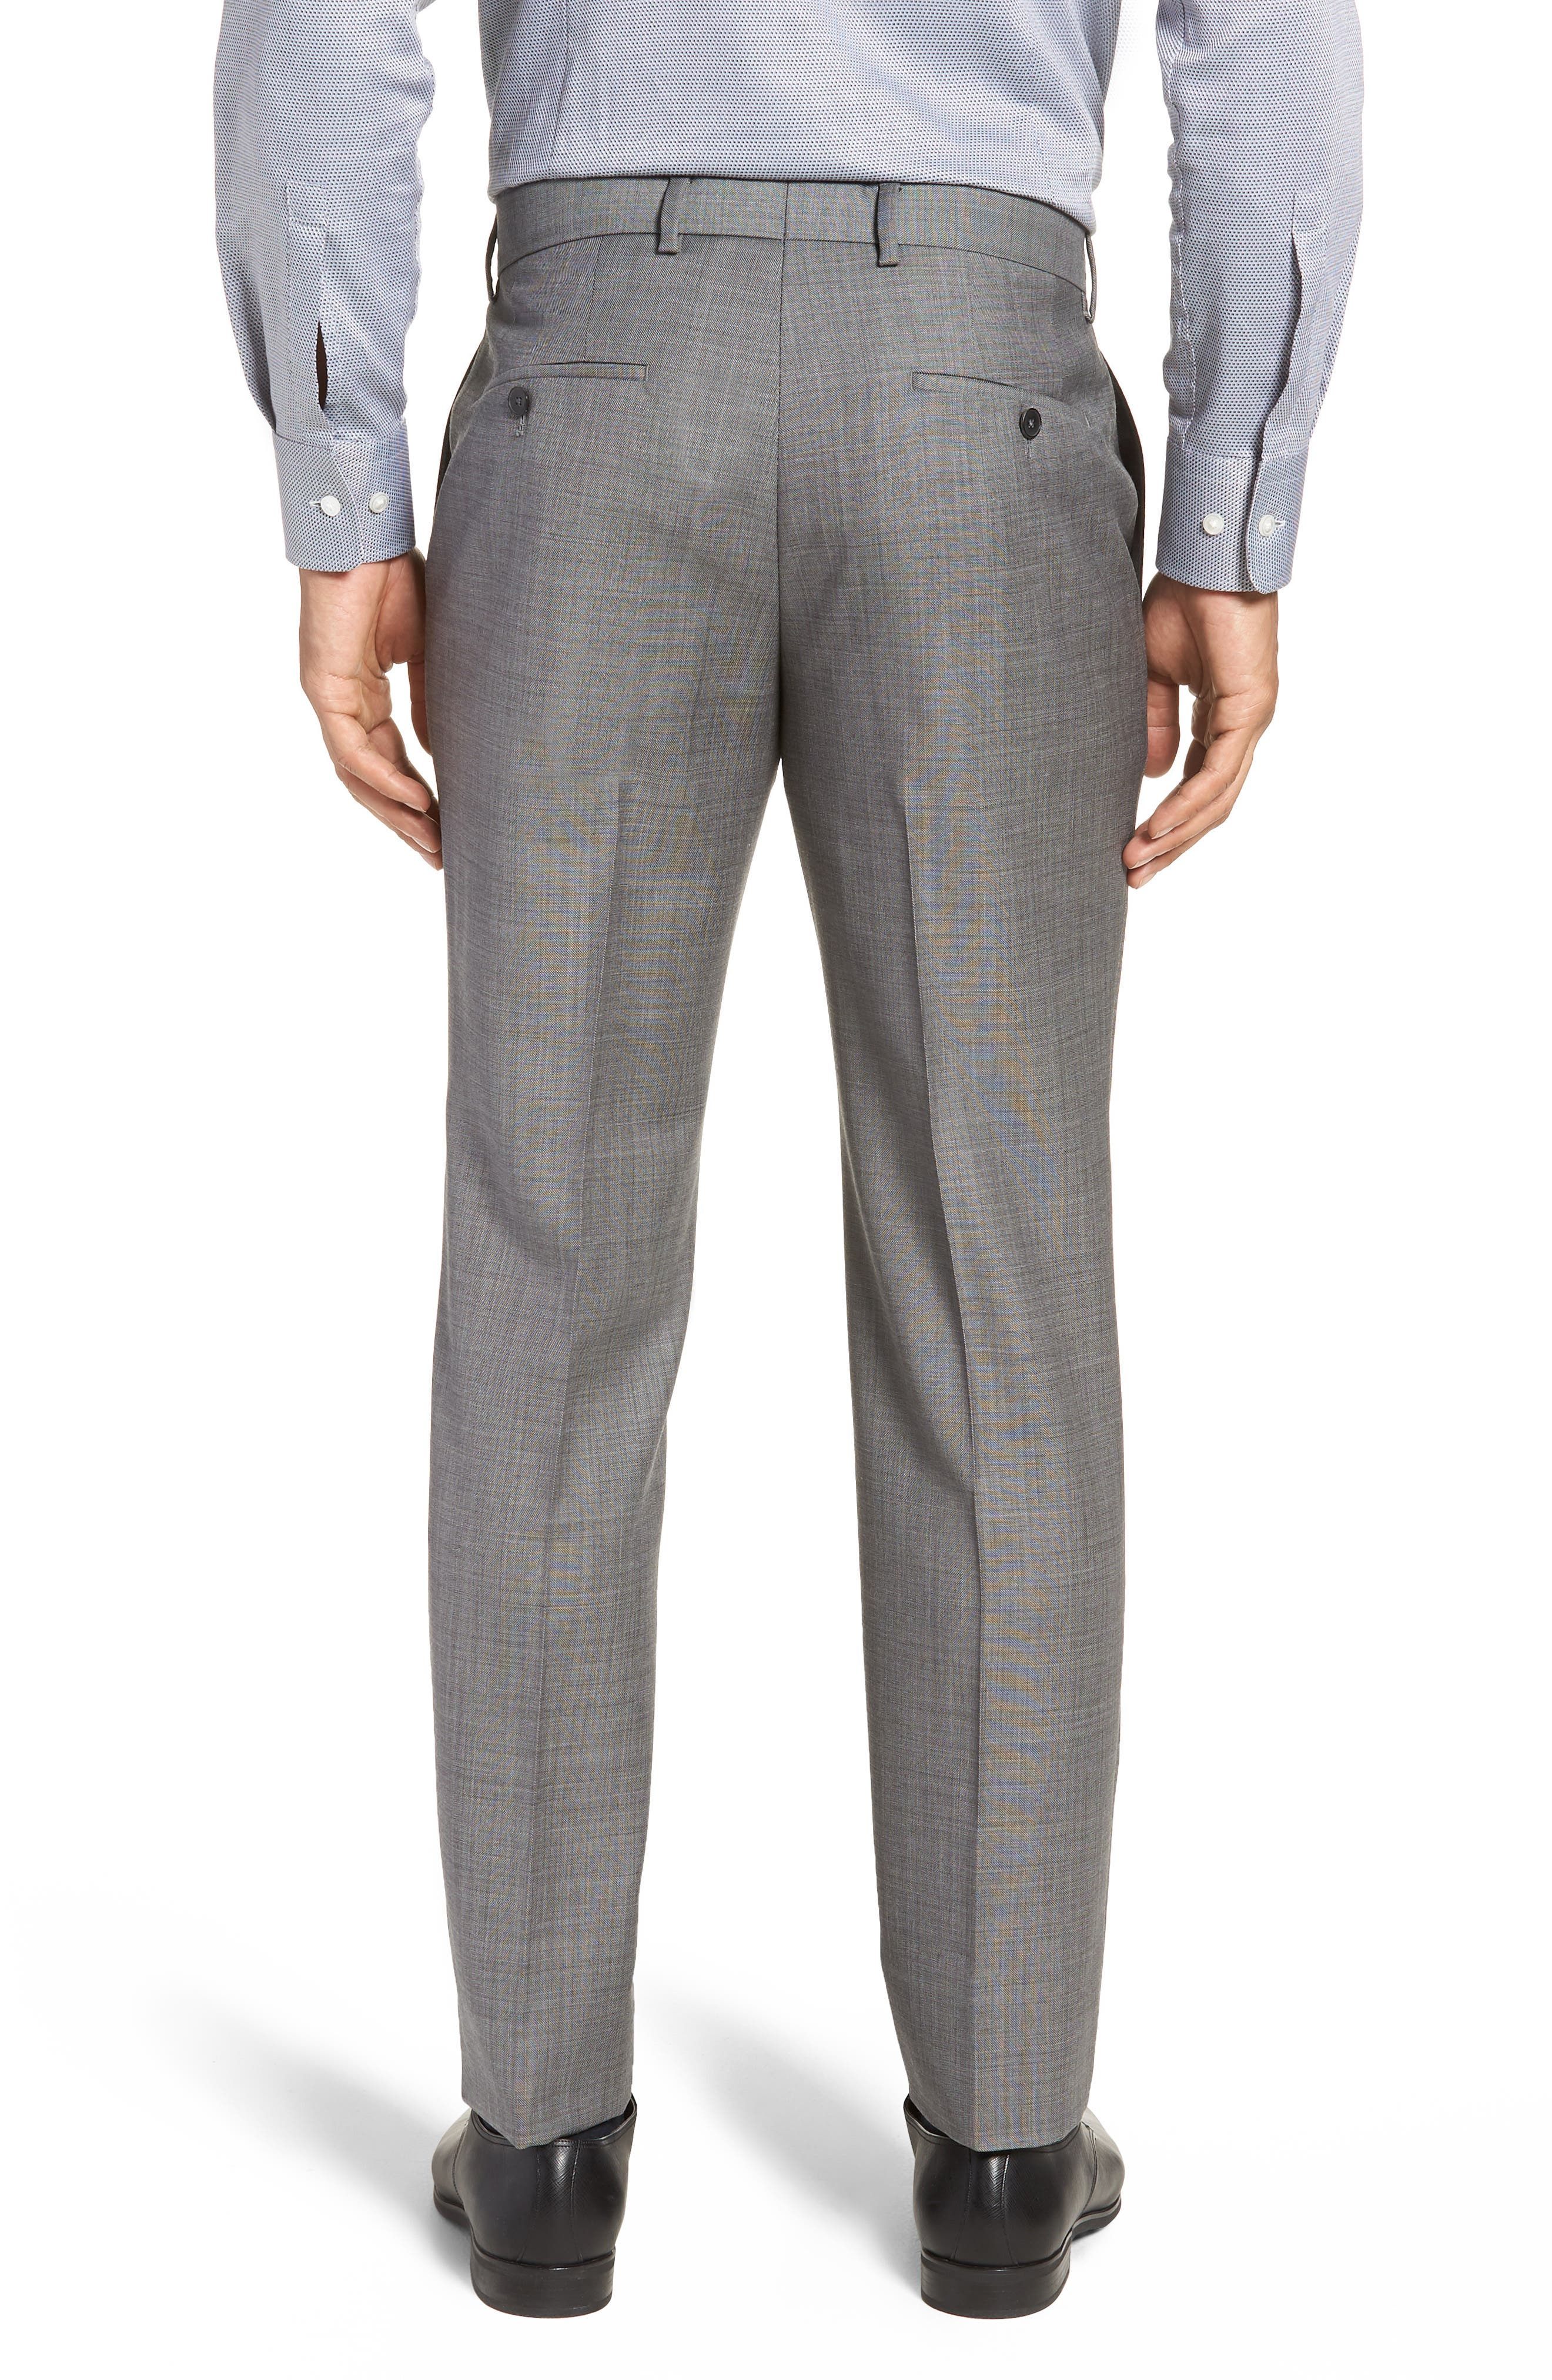 Genesis Flat Front Solid Wool Trousers,                             Alternate thumbnail 2, color,                             GREY